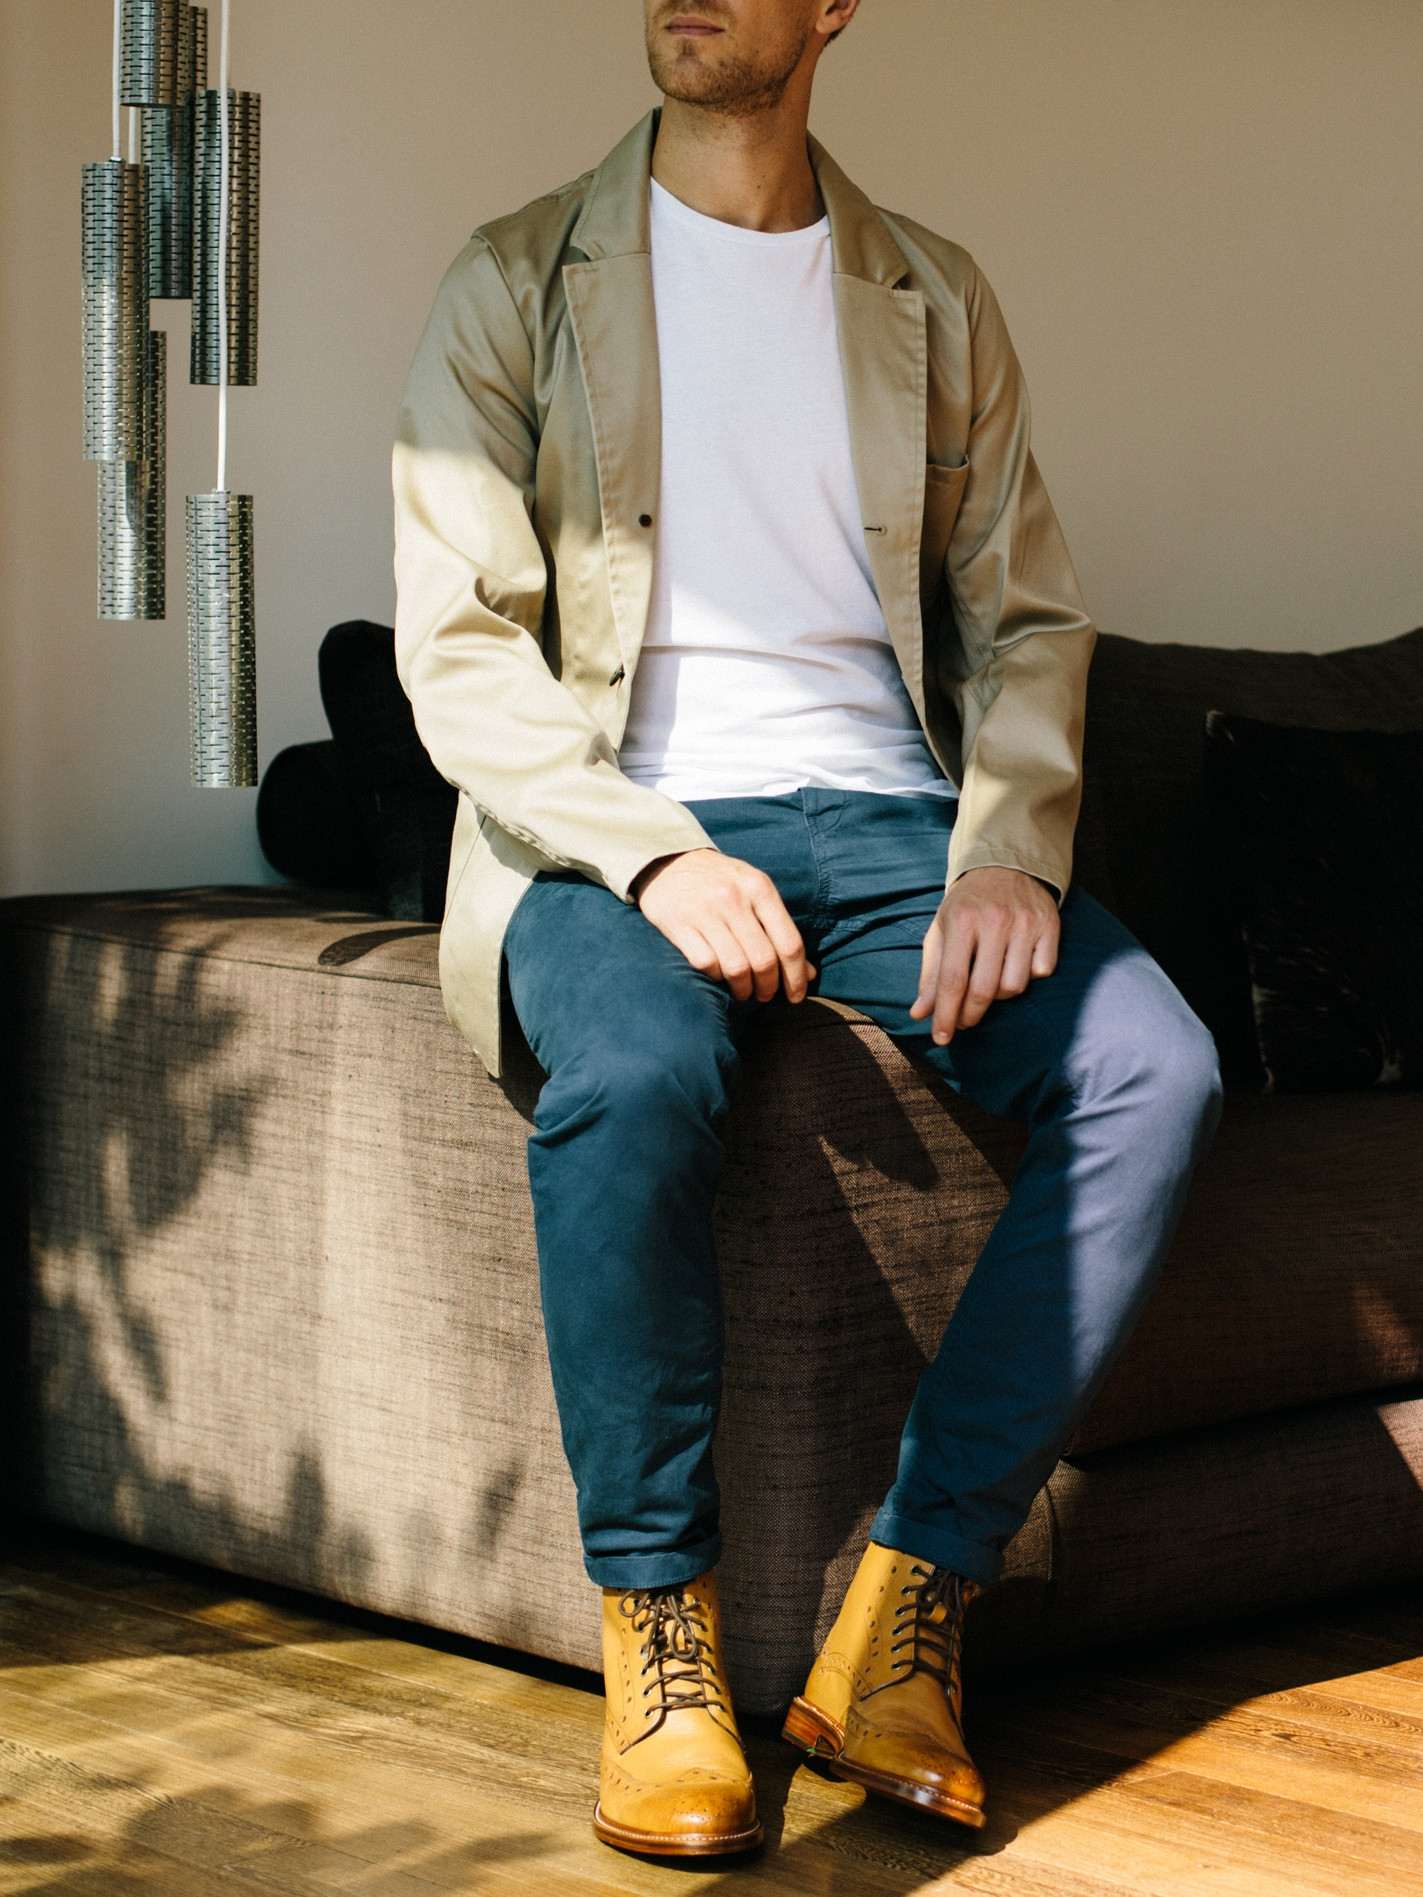 Men's outfit idea for 2021 with unstructured blazer, white crew neck t-shirt, navy chinos, lace-up leather boots. Suitable for spring, summer and autumn.